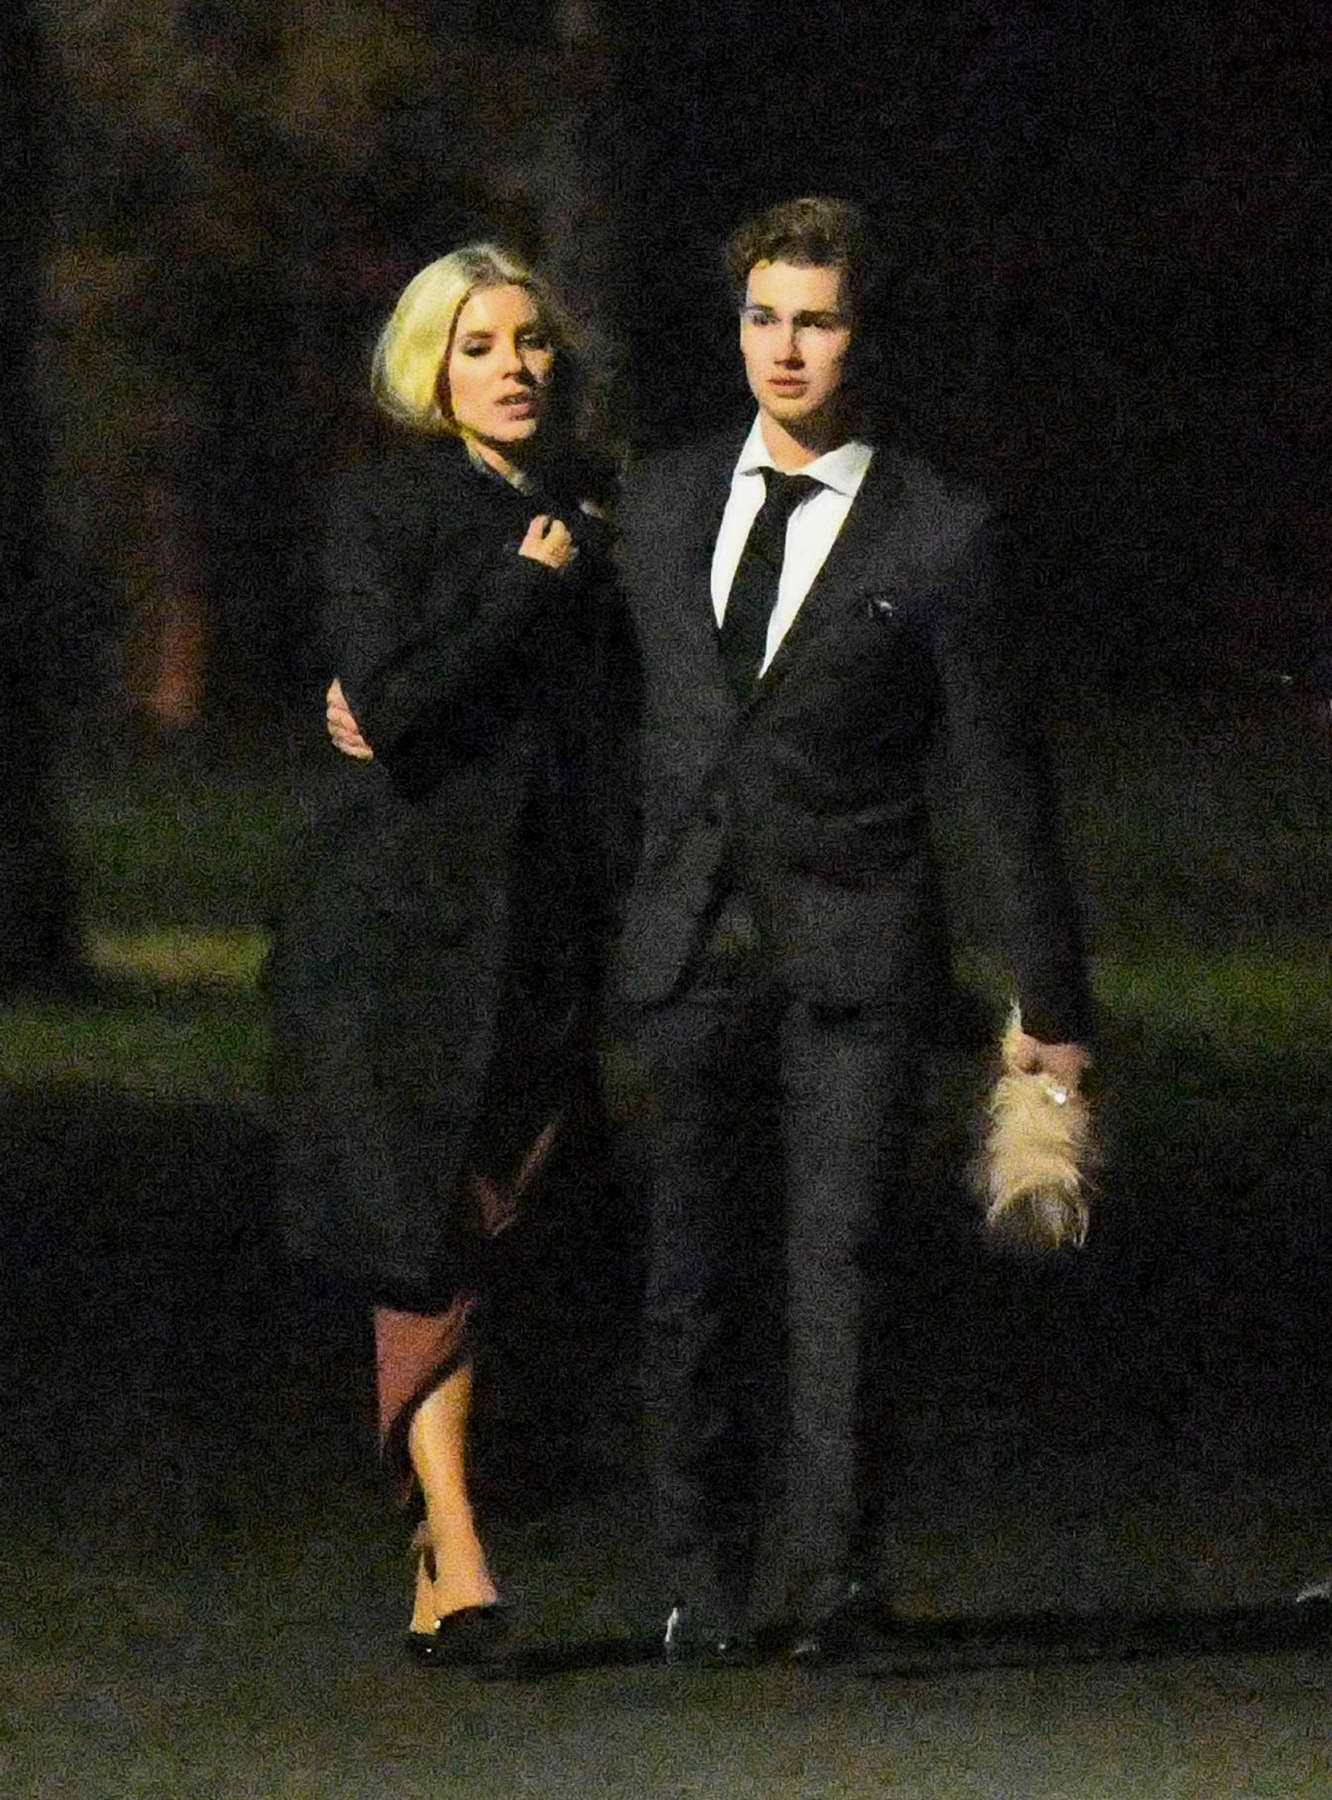 Mollie King and AJ Pritchard seen leaving after attending a wedding together in Liverpool, UK